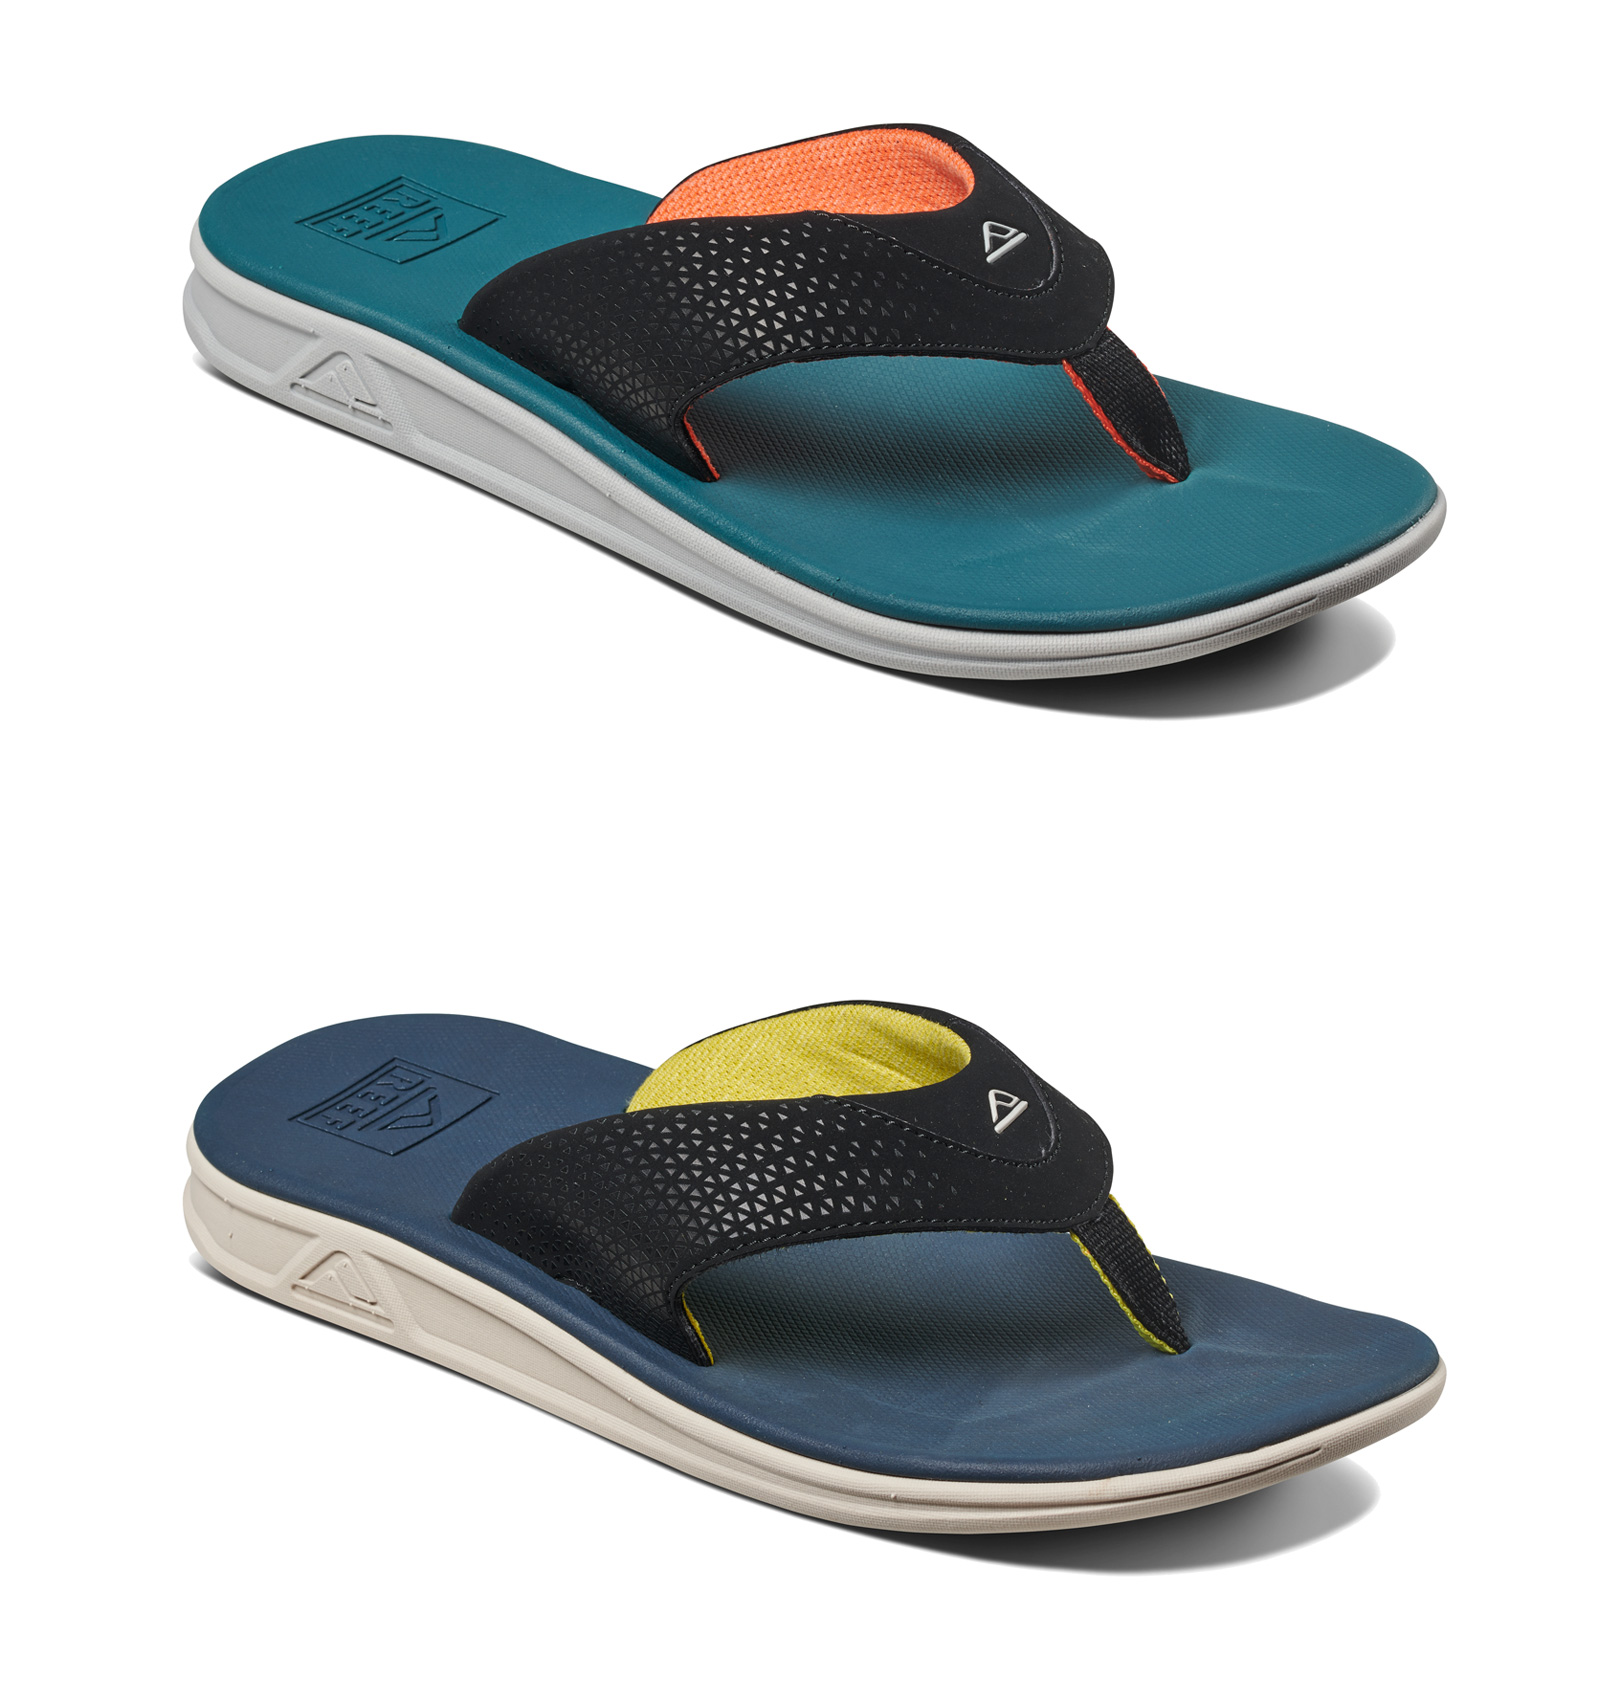 4dc6ab00cad2 Sentinel Reef Flip Flop - Rover - Navy Yellow